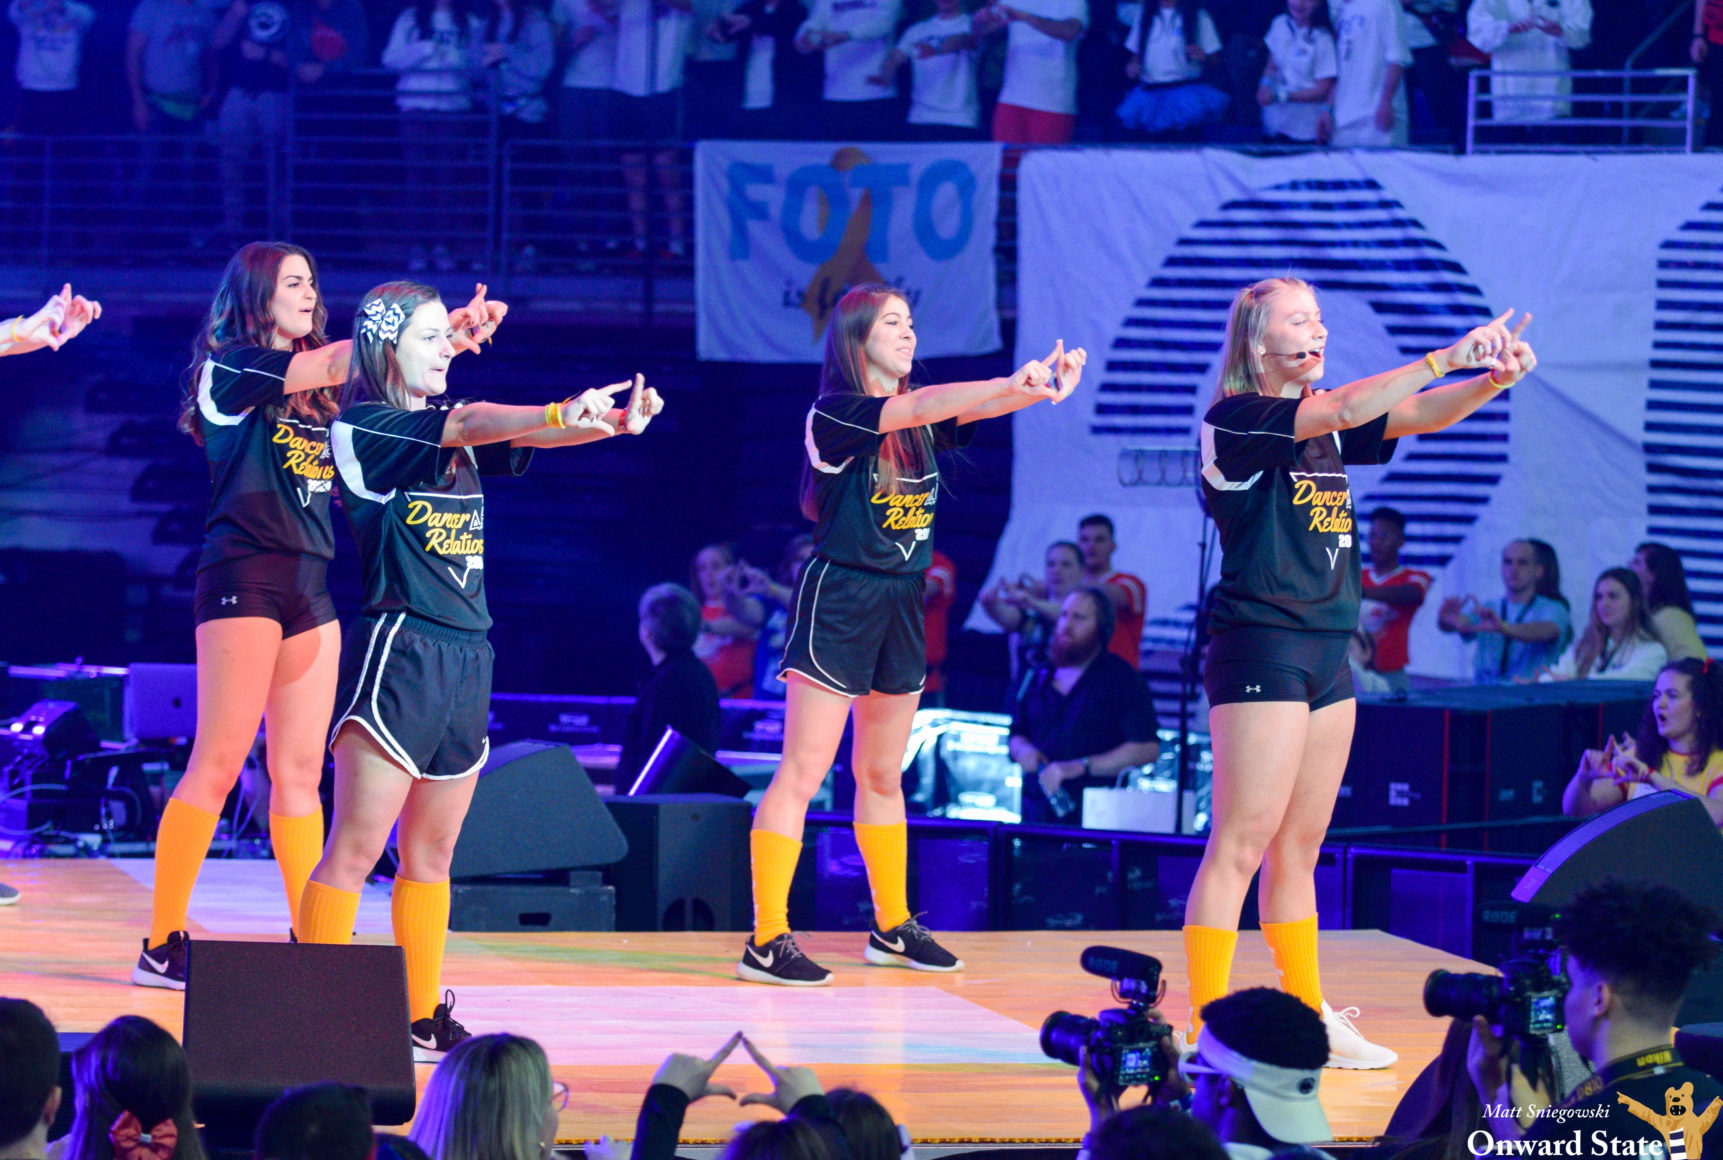 [Video] THON 2020 Line Dance: 'Let's Get Hype, Let's Go'